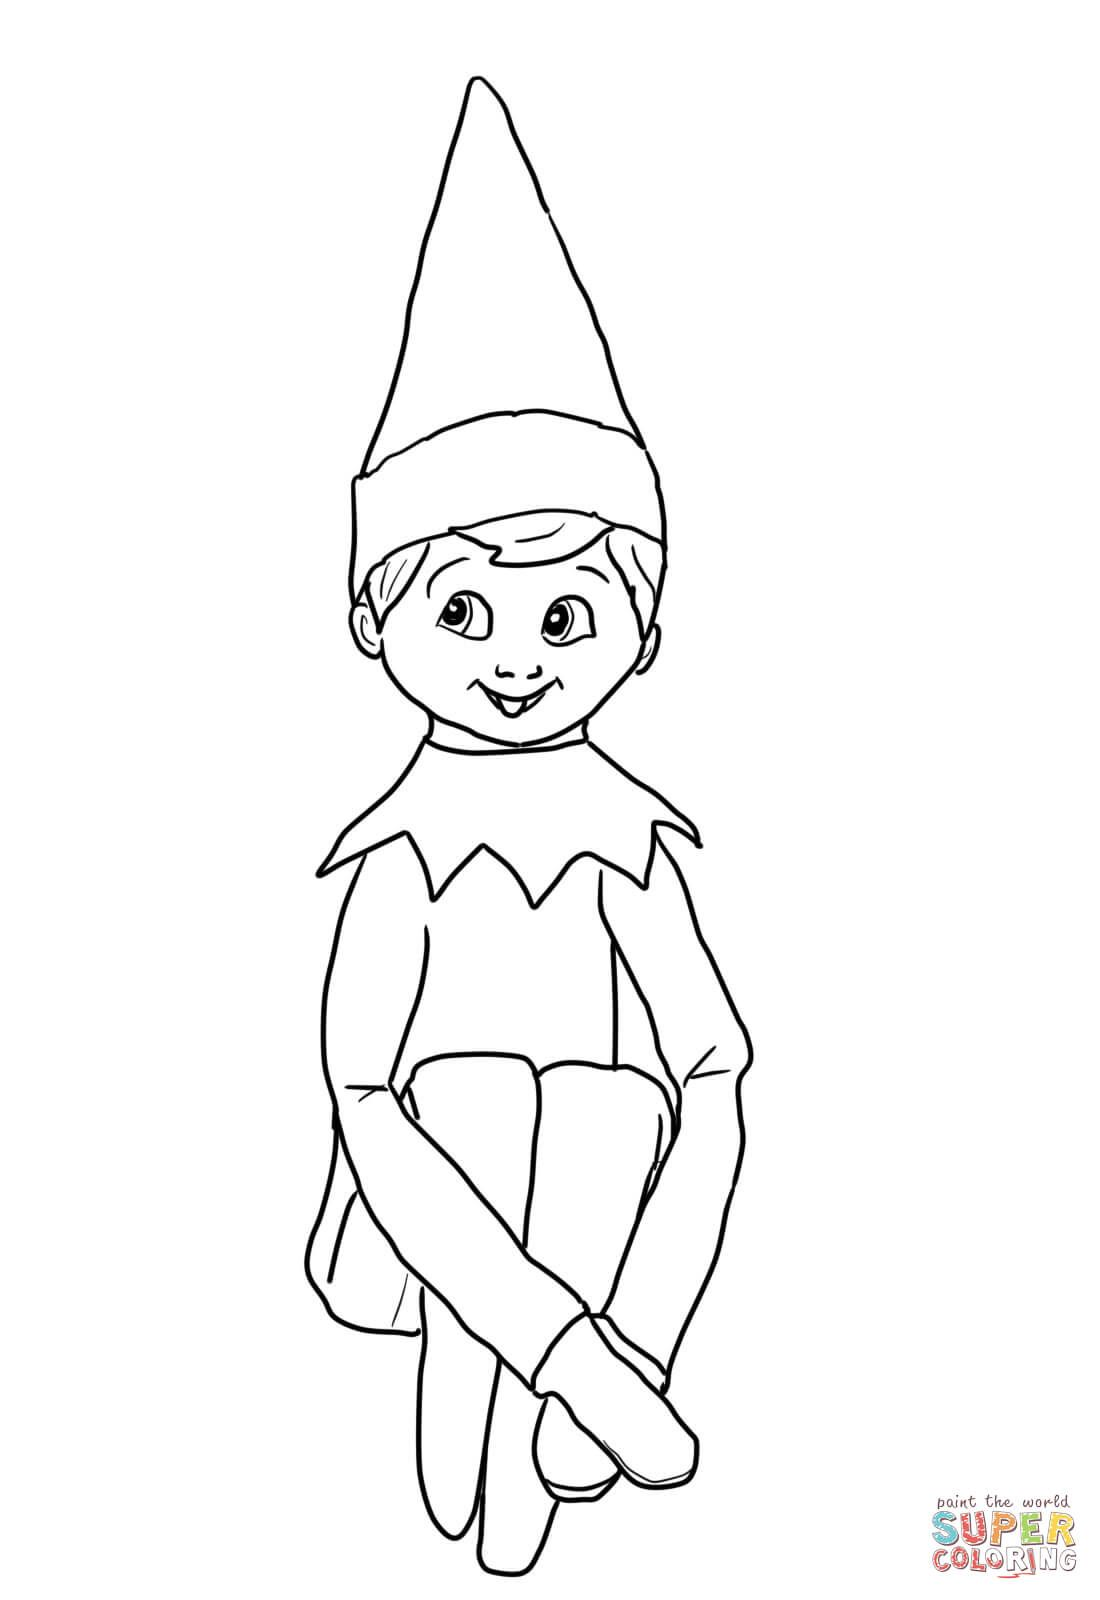 Christmas Elf Coloring Pages For Adults With These Free Printable Santa Elves Also Trees